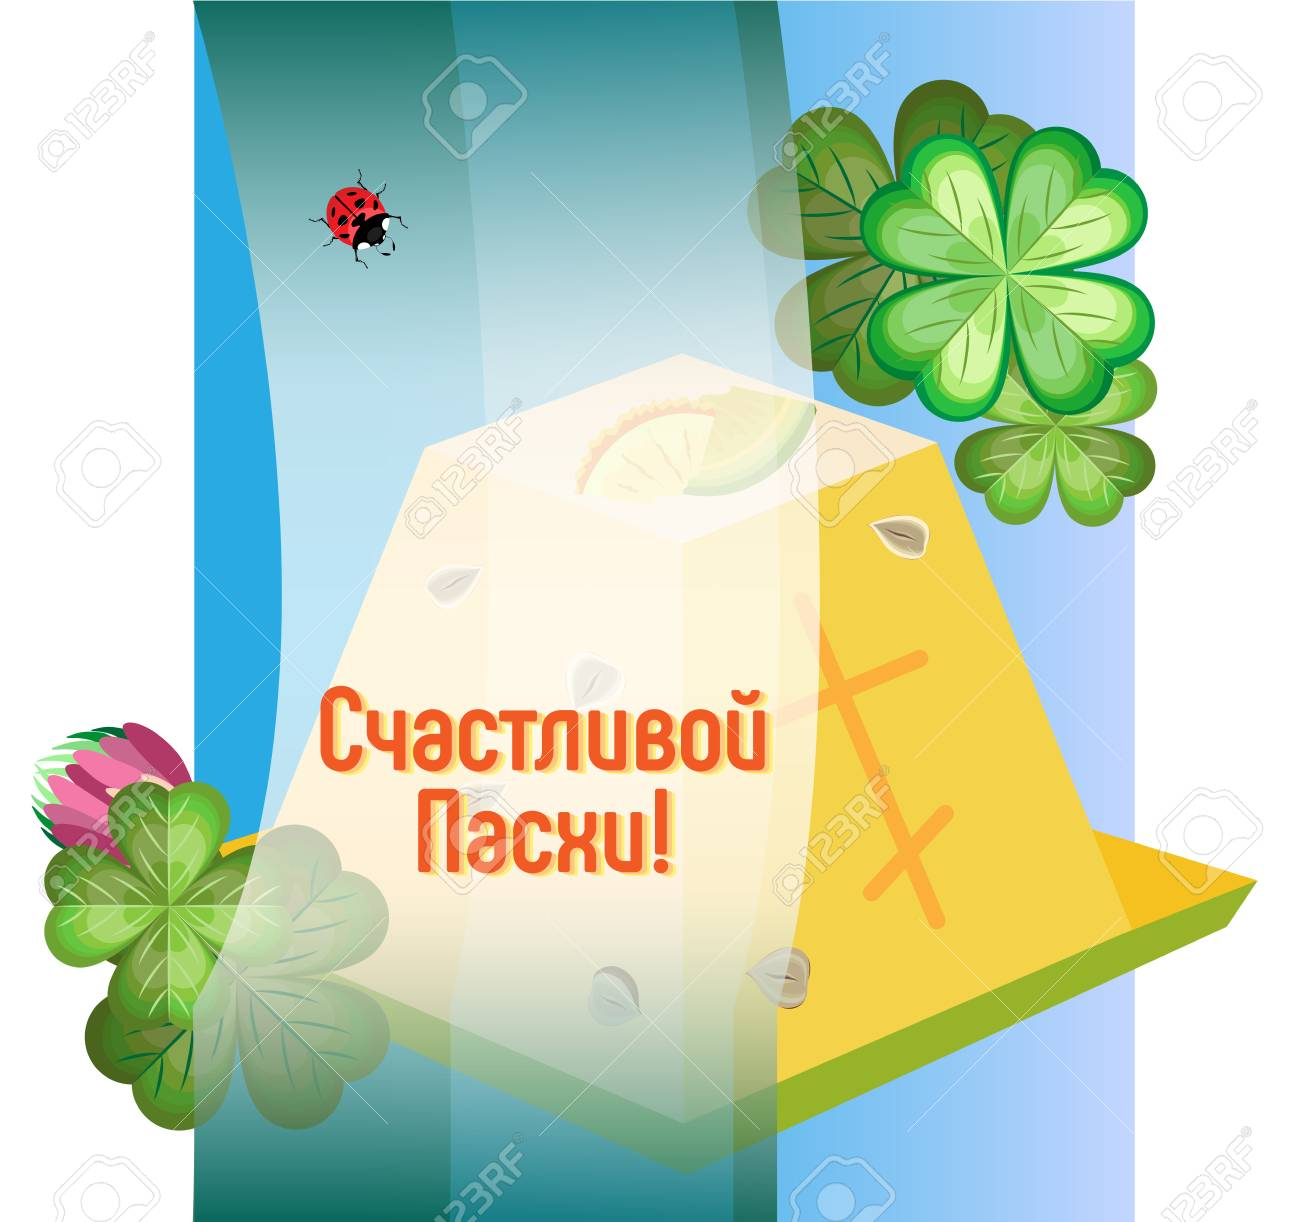 Vector Square Greeting Card For Orthodox Easter Easter Dessert